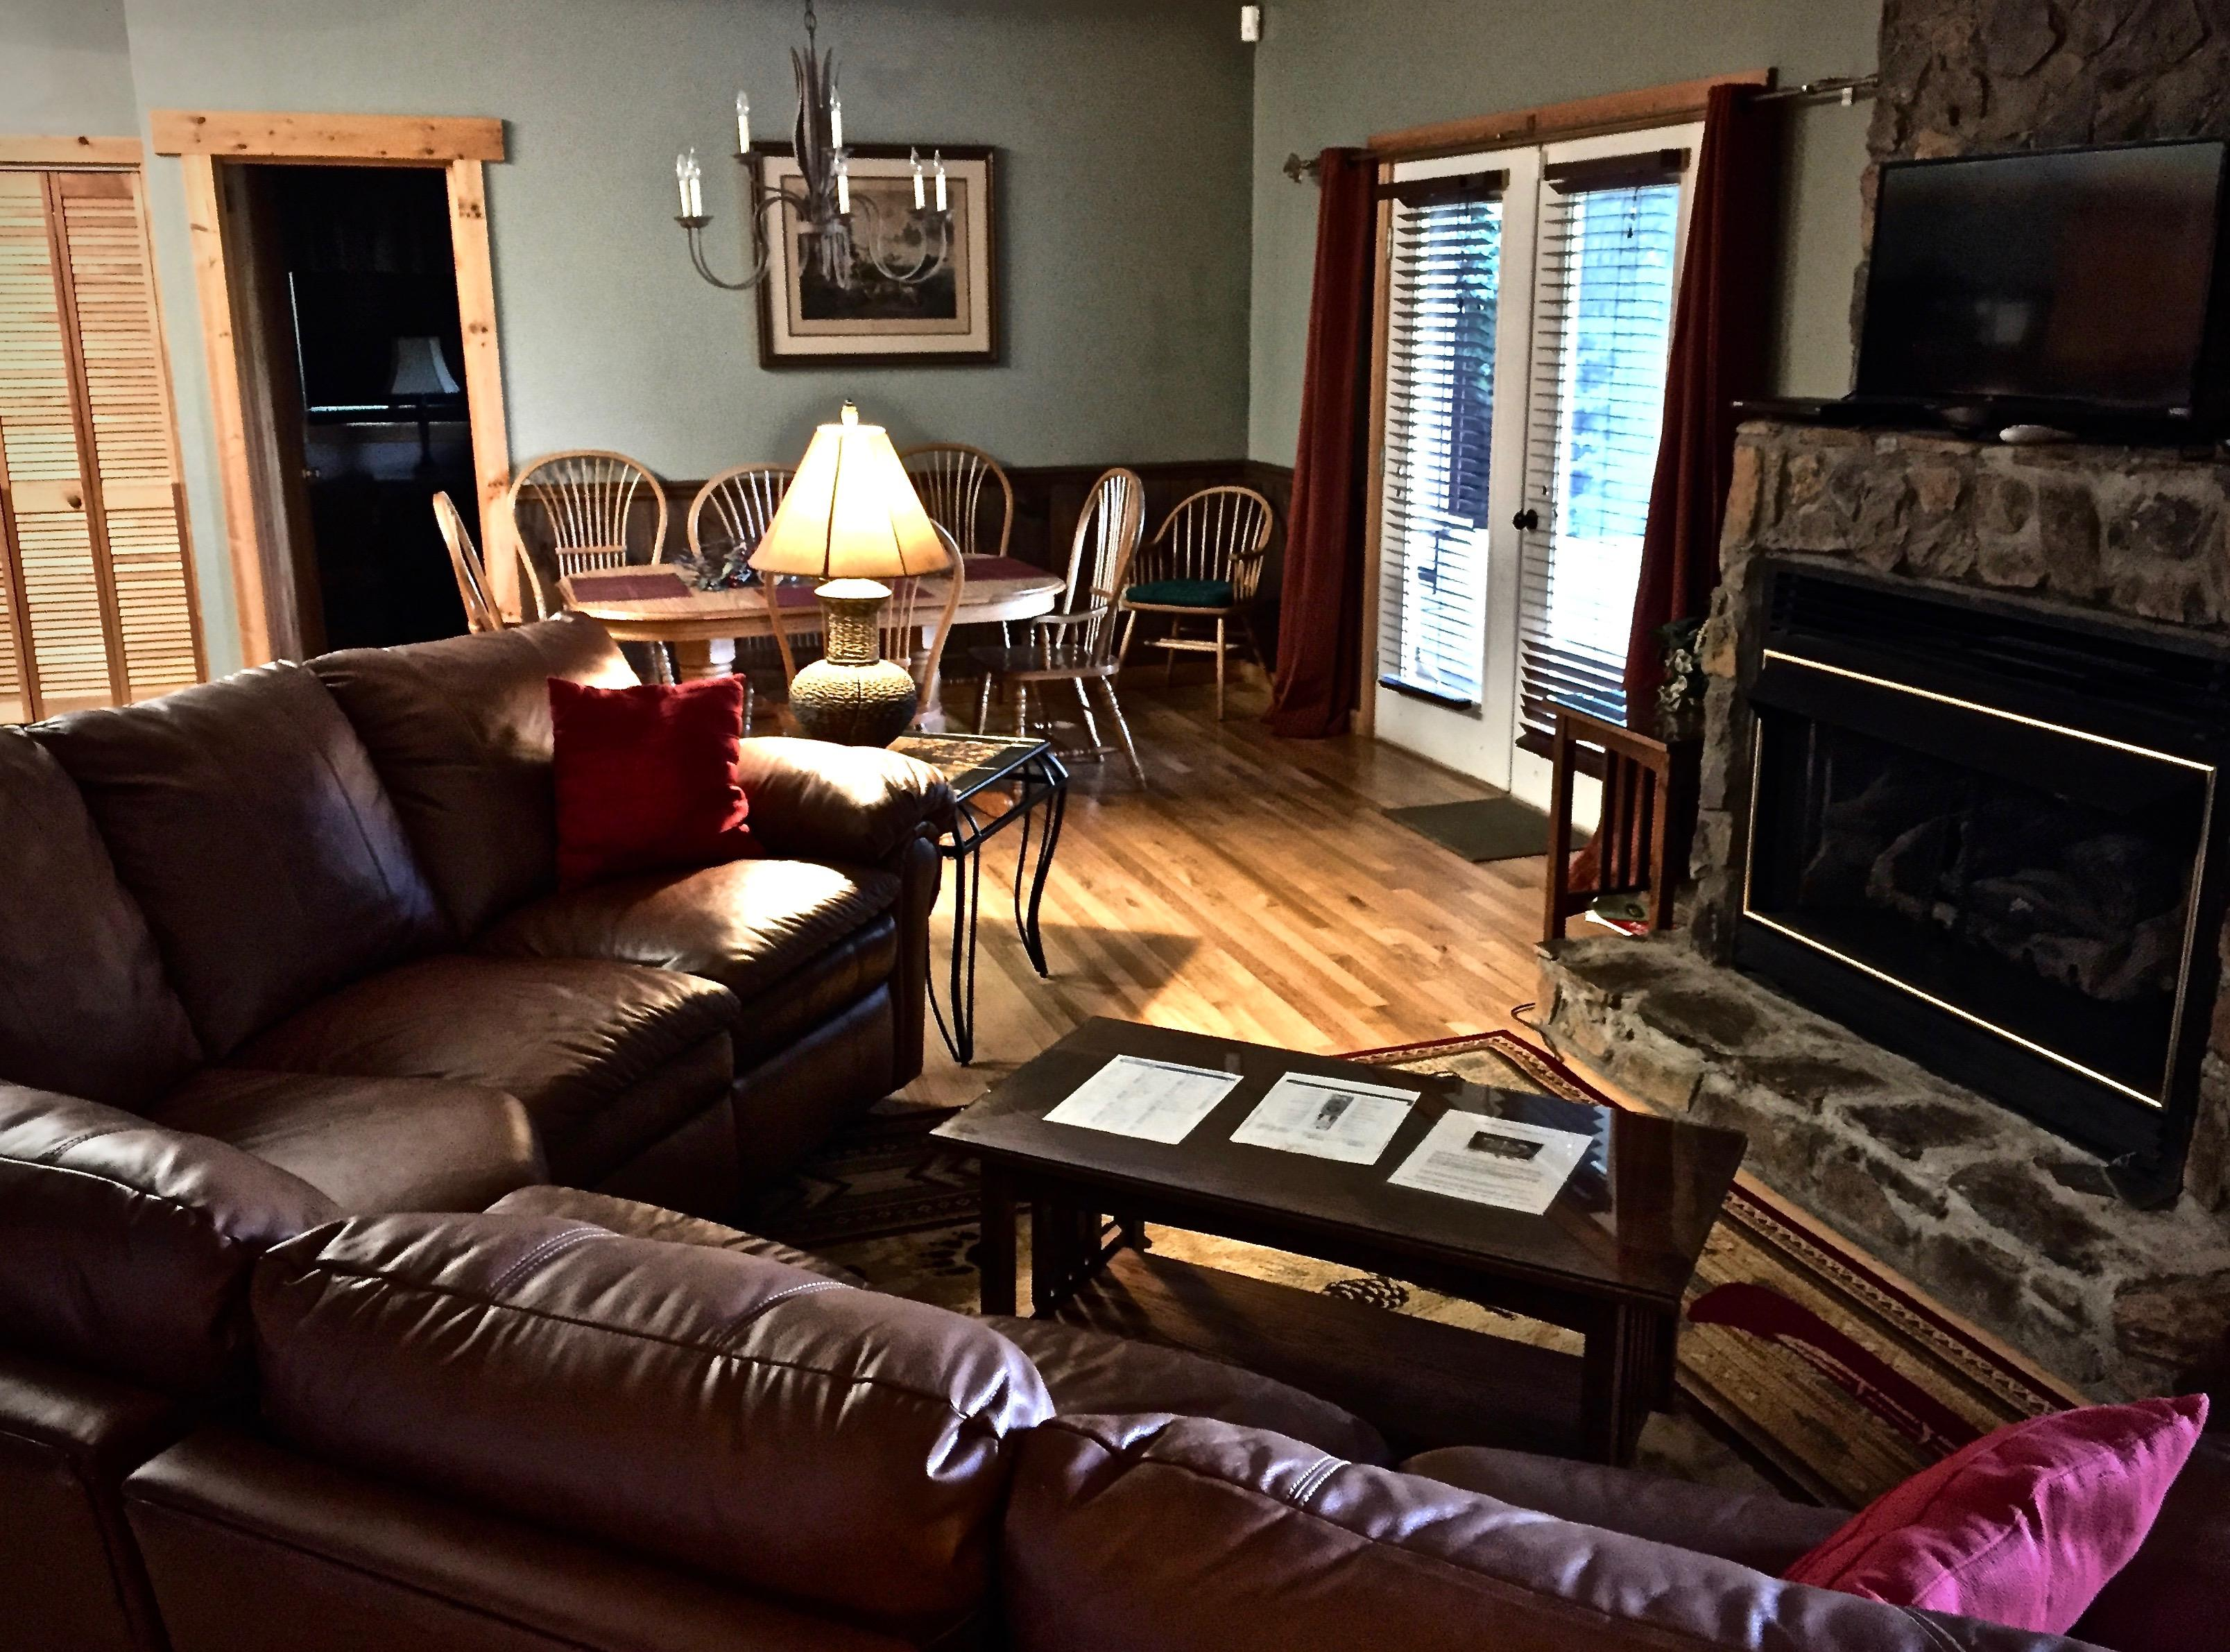 Open Floor Plan with french doors flanking each side of the Stone Fireplace complete the Living/Great Room